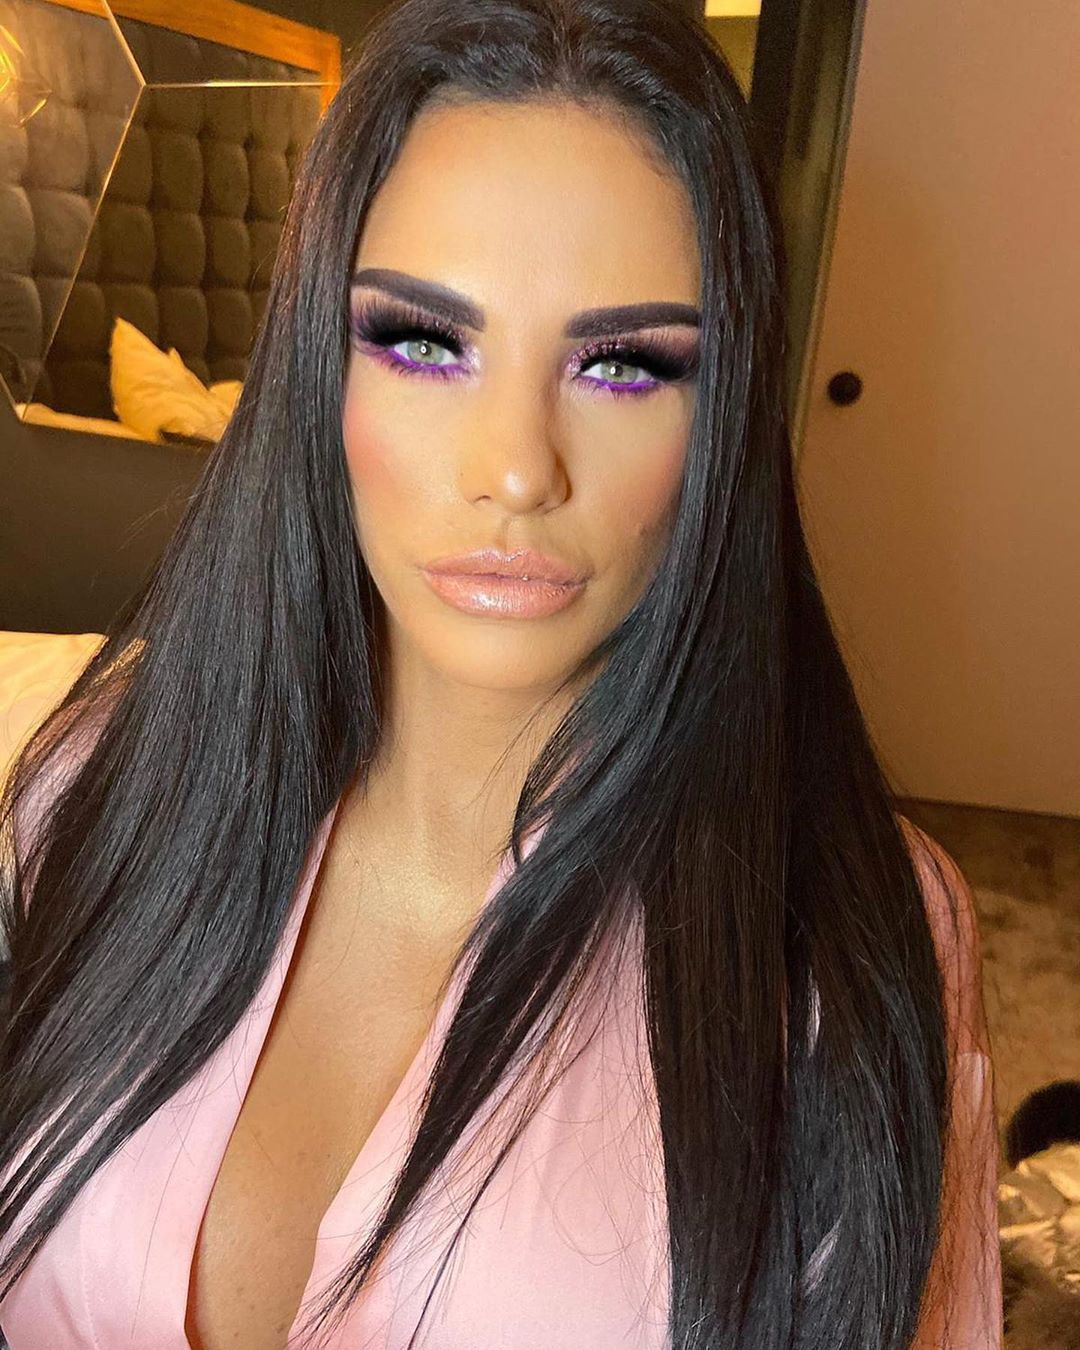 Katie price on instagram london date just added to my